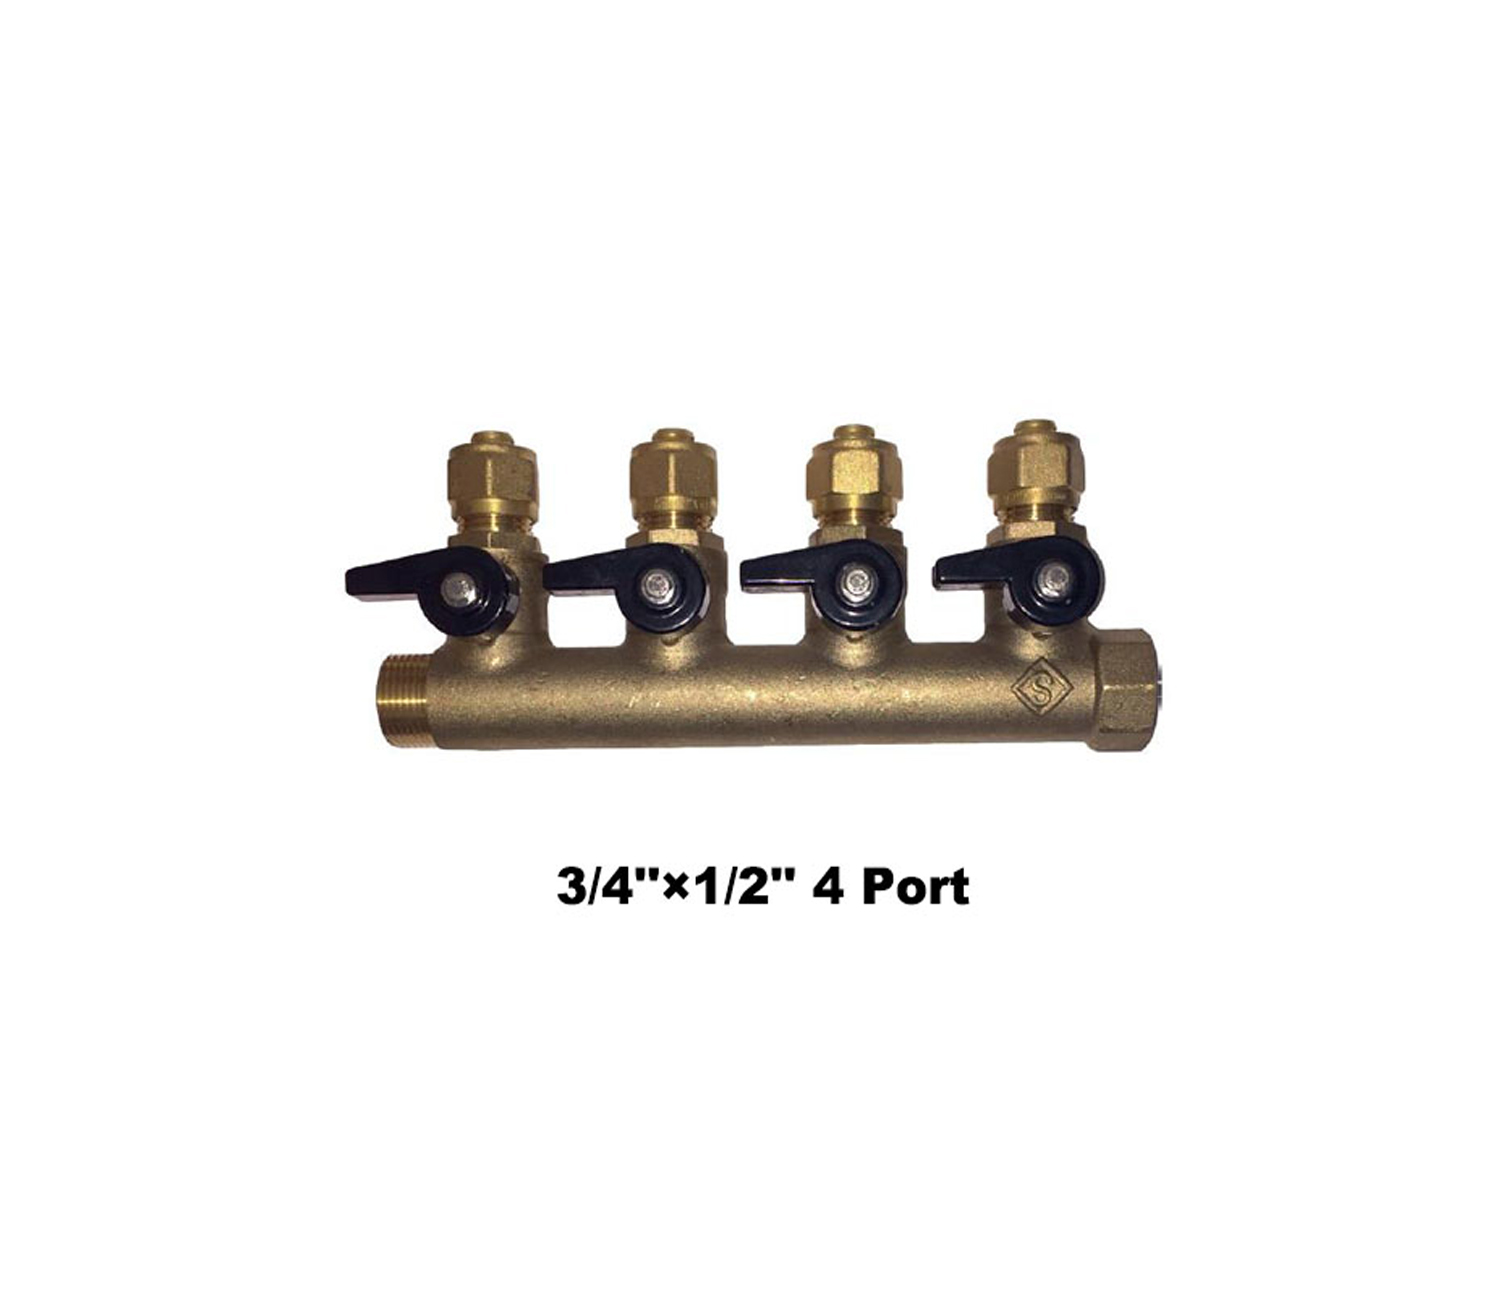 "Brass Manifolds with ISO Valves (With Adaptors) 3/4""×1/2"" 4 Port Manifold+ISO (771895K)"